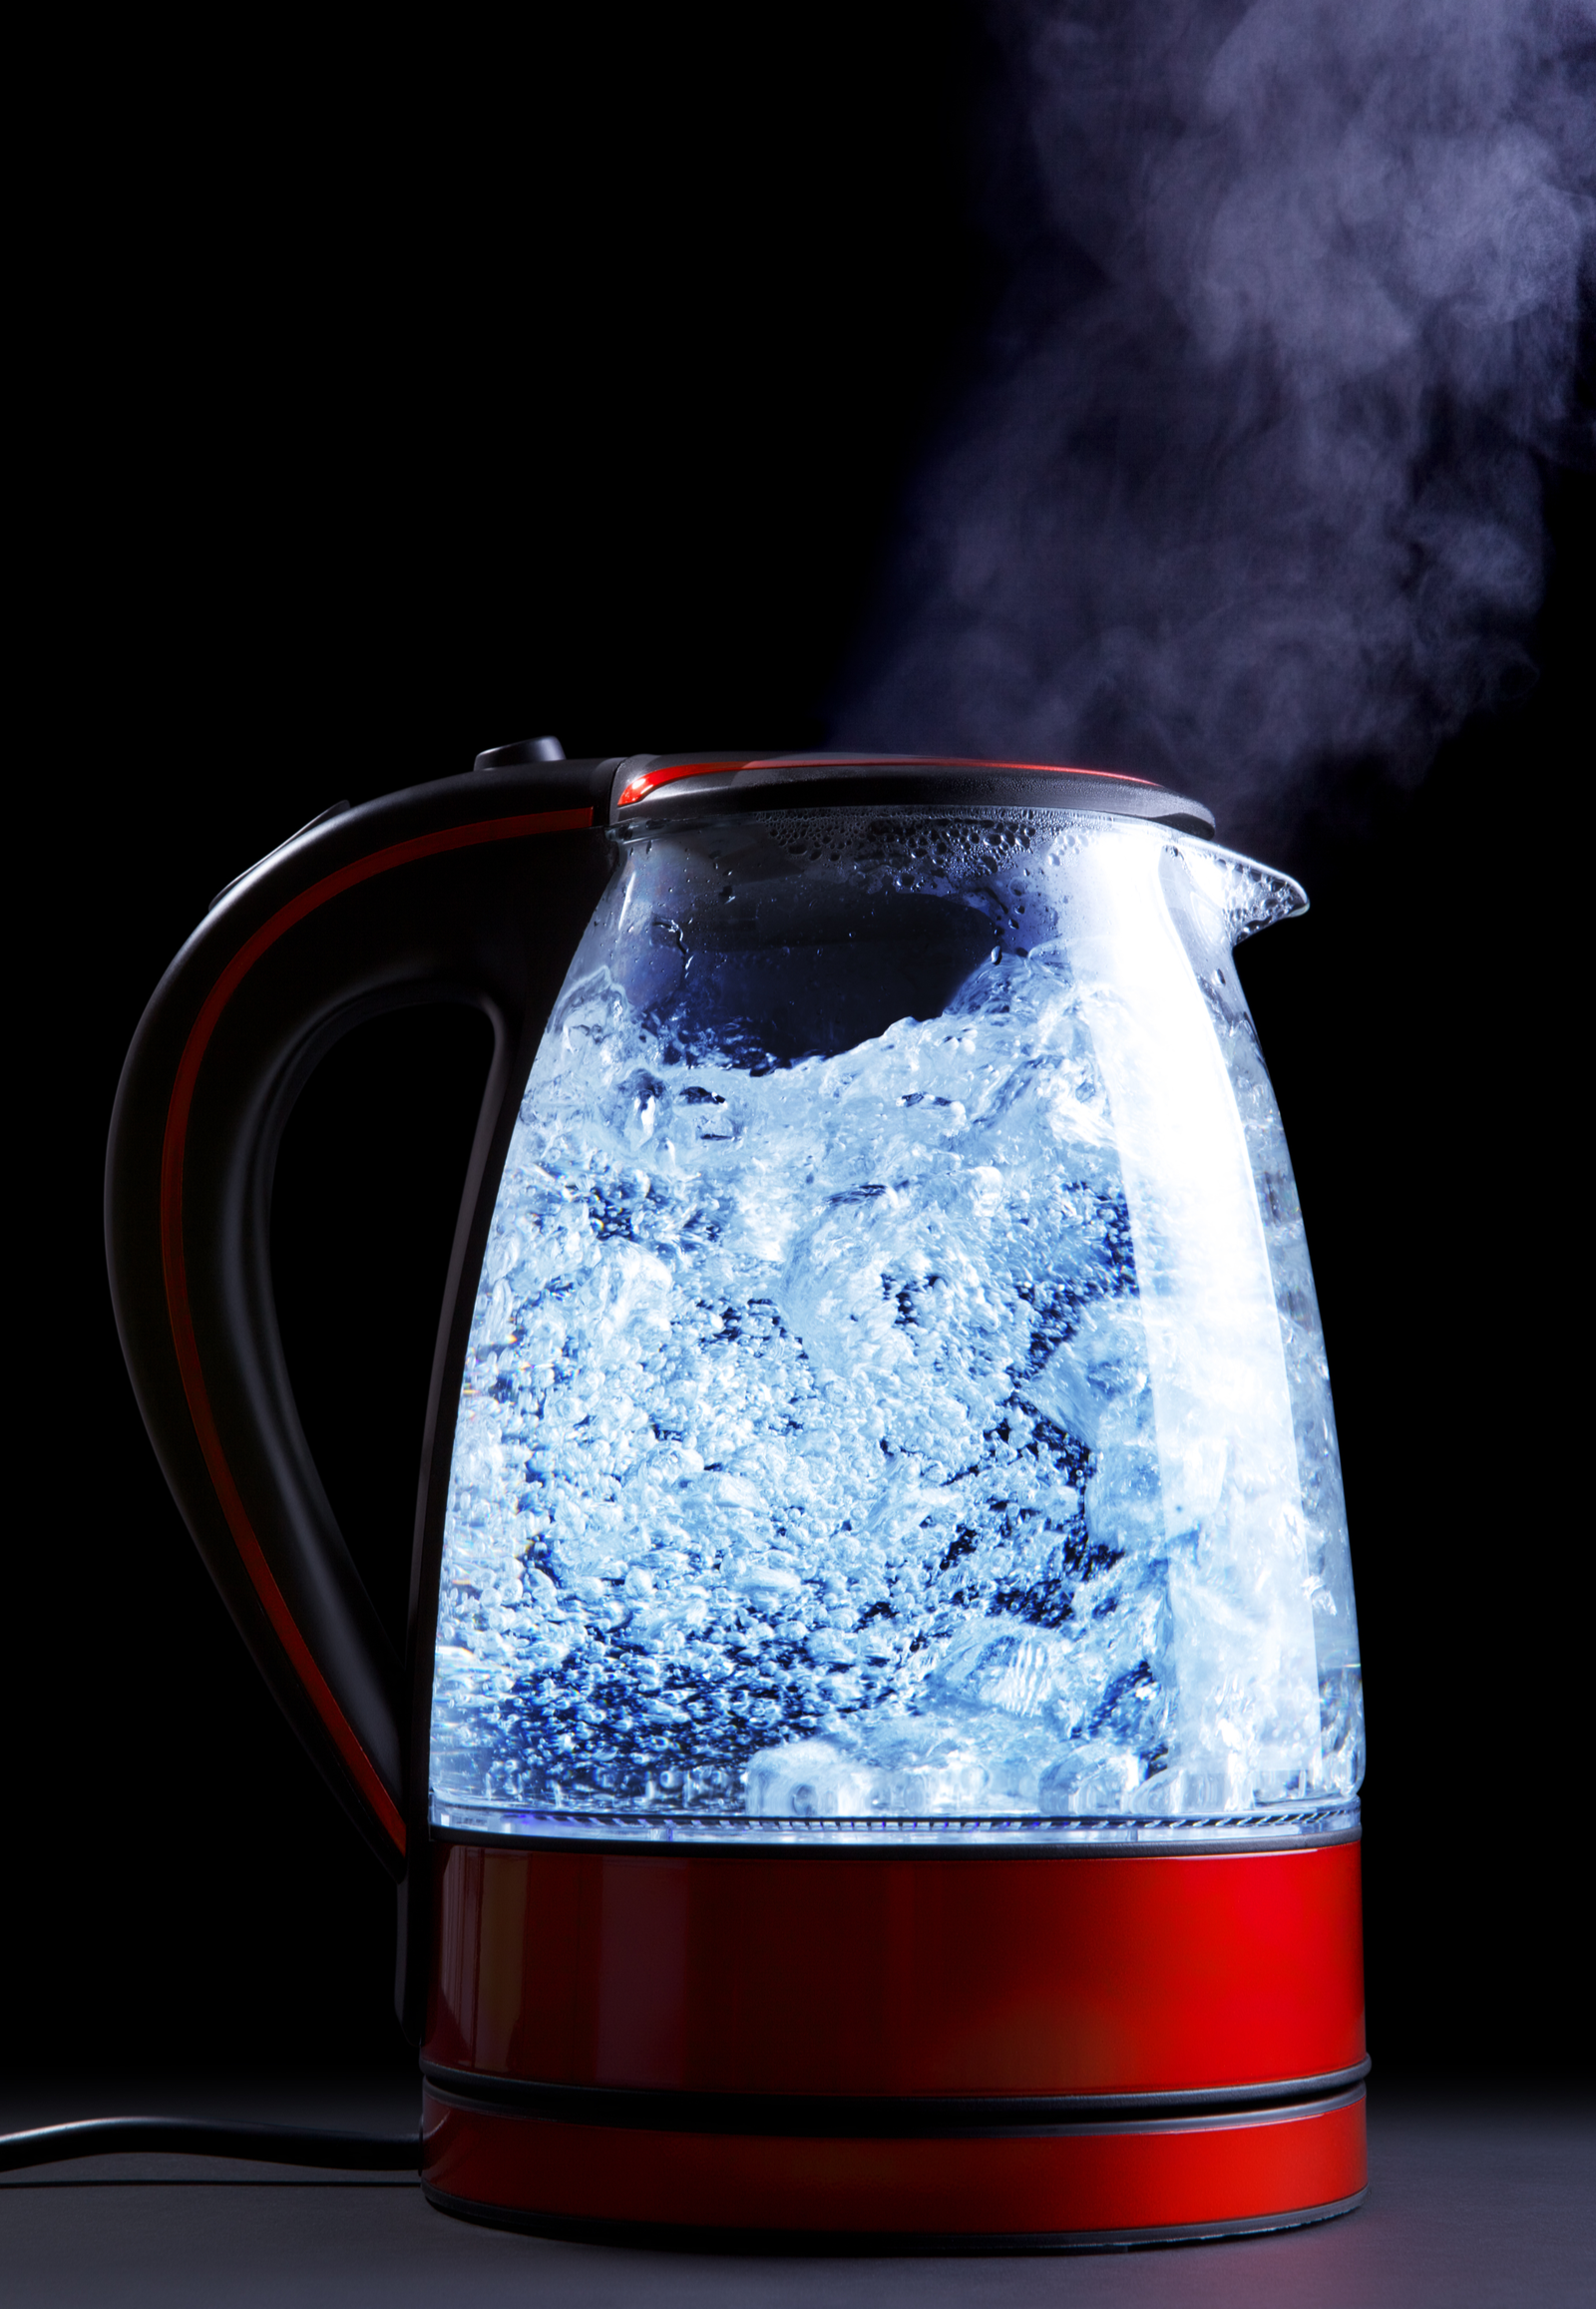 Kettle | Enjoy The Perfect Cup: How To Brew Tea The Right Way